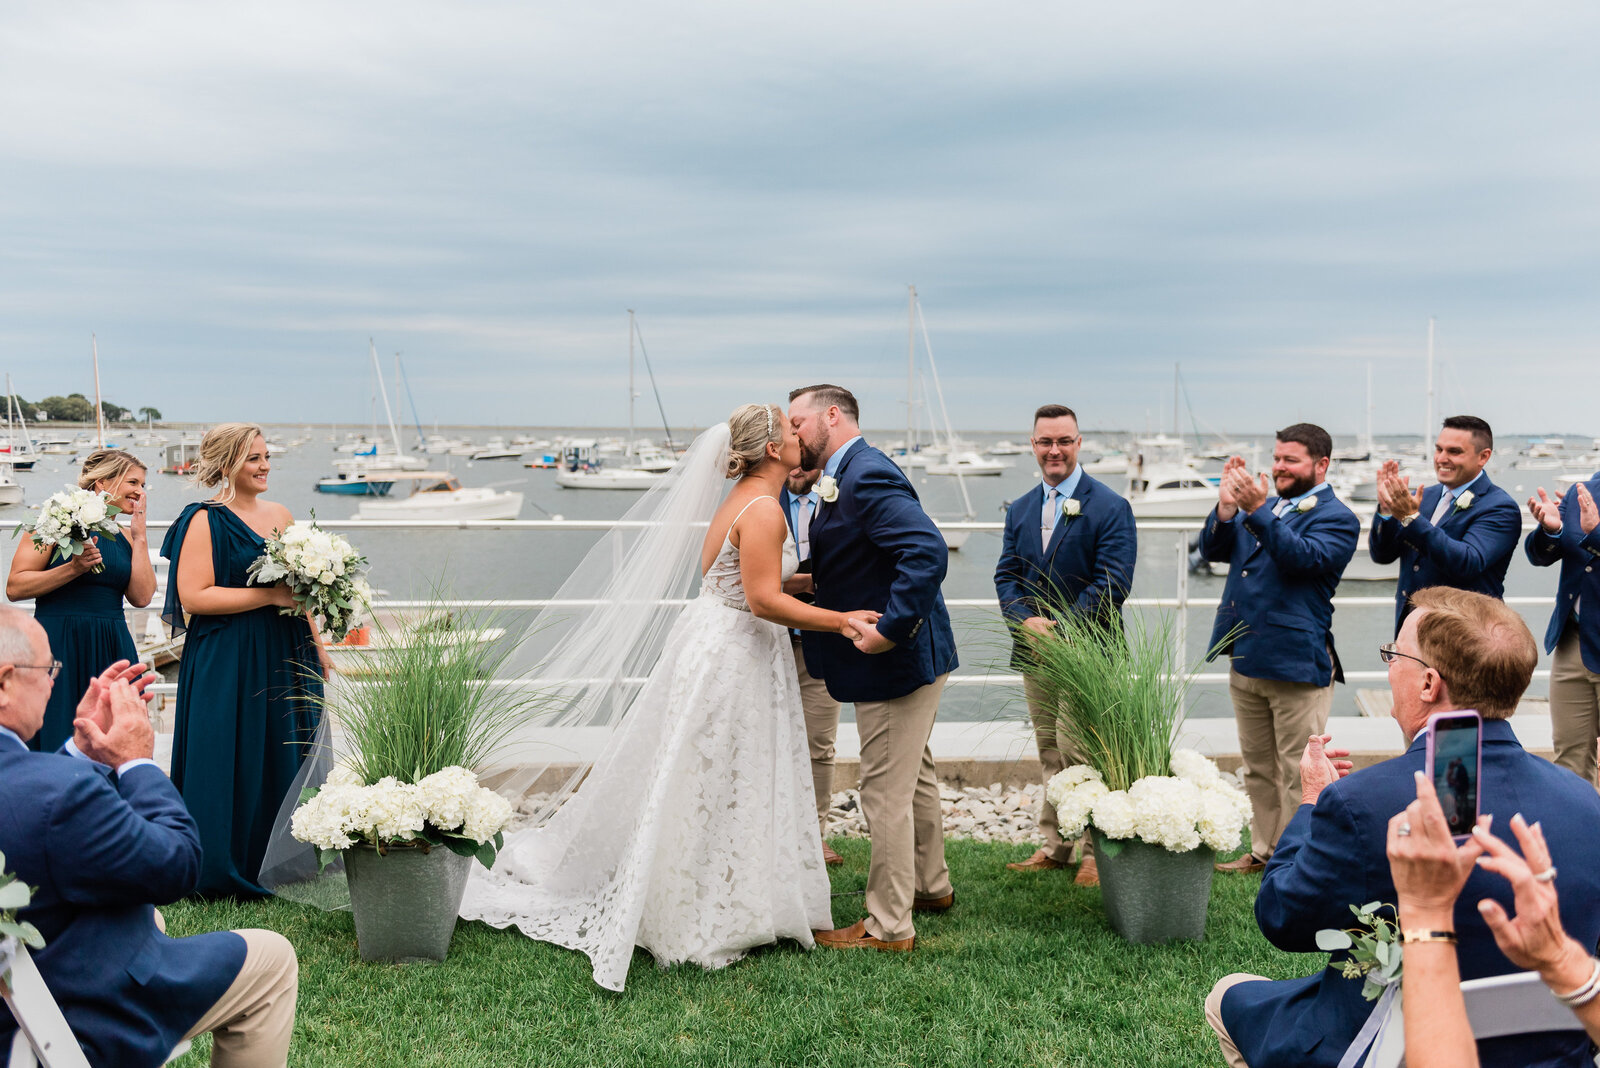 first kiss at a wedding ceremony on the lawn at the duxbury bay maritime school waterfront venue